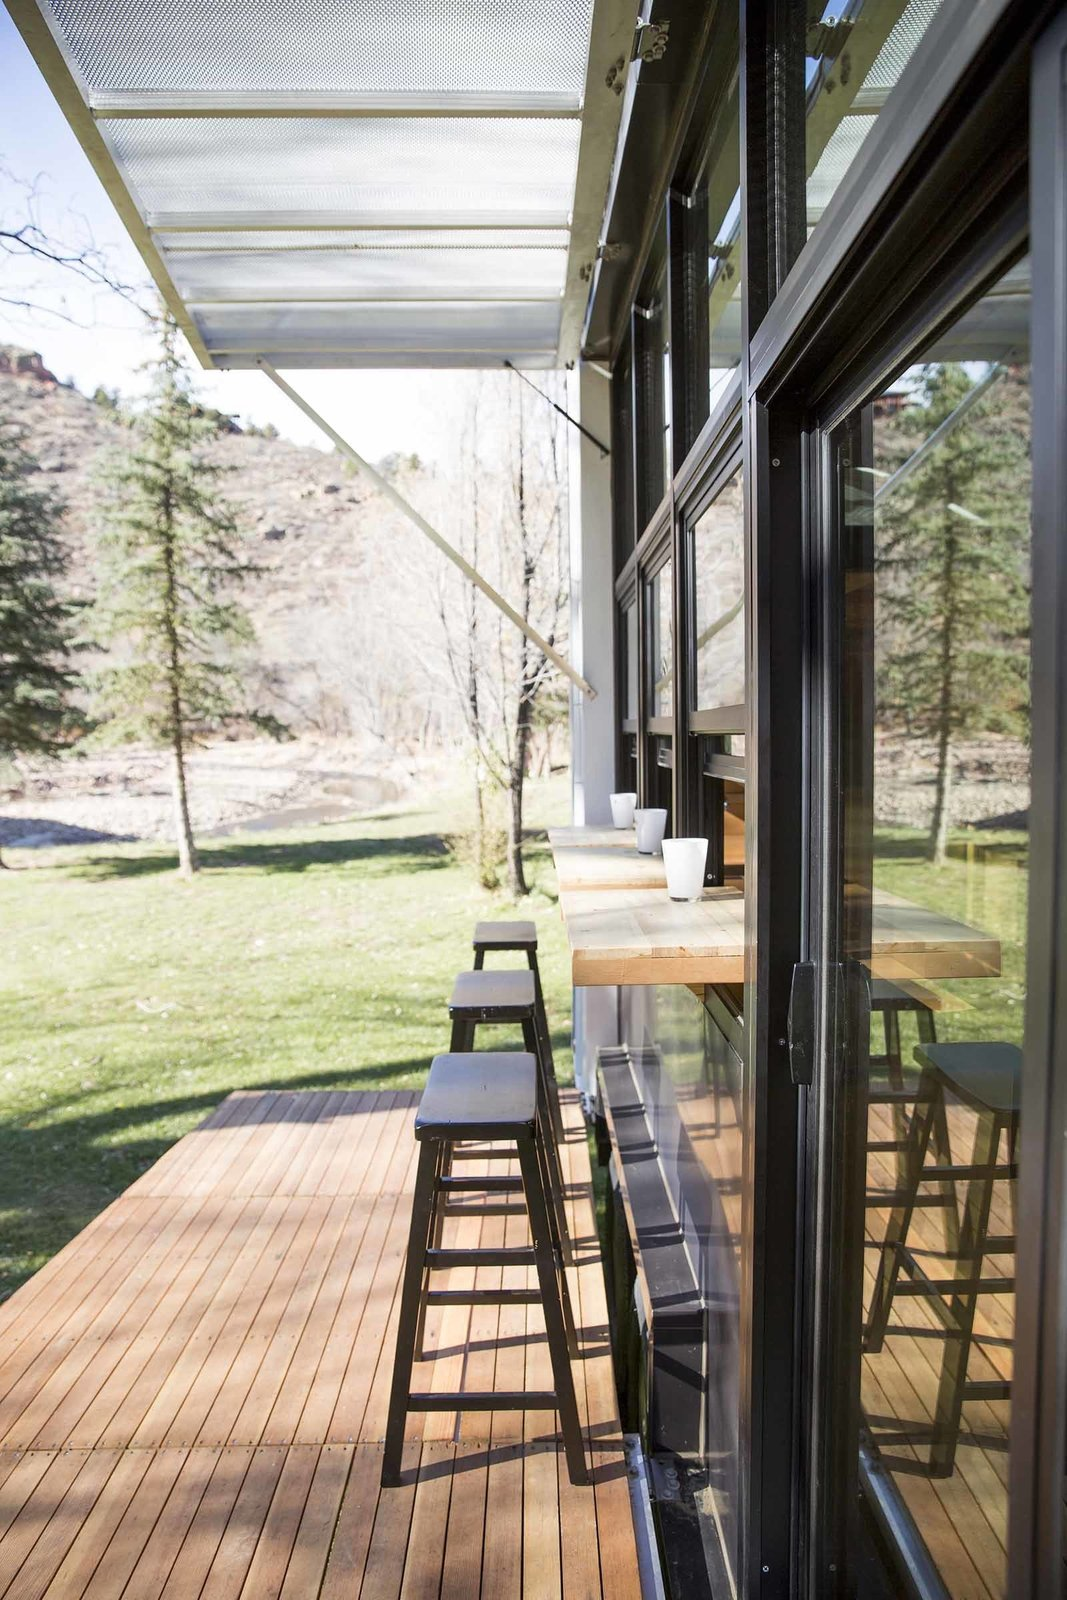 Generous windows and a split indoor-outdoor benchtop help bring the outside in.  A Tiny Trailer Home Harvests Solar Power and Rainwater to Save Energy by Luke Hopping